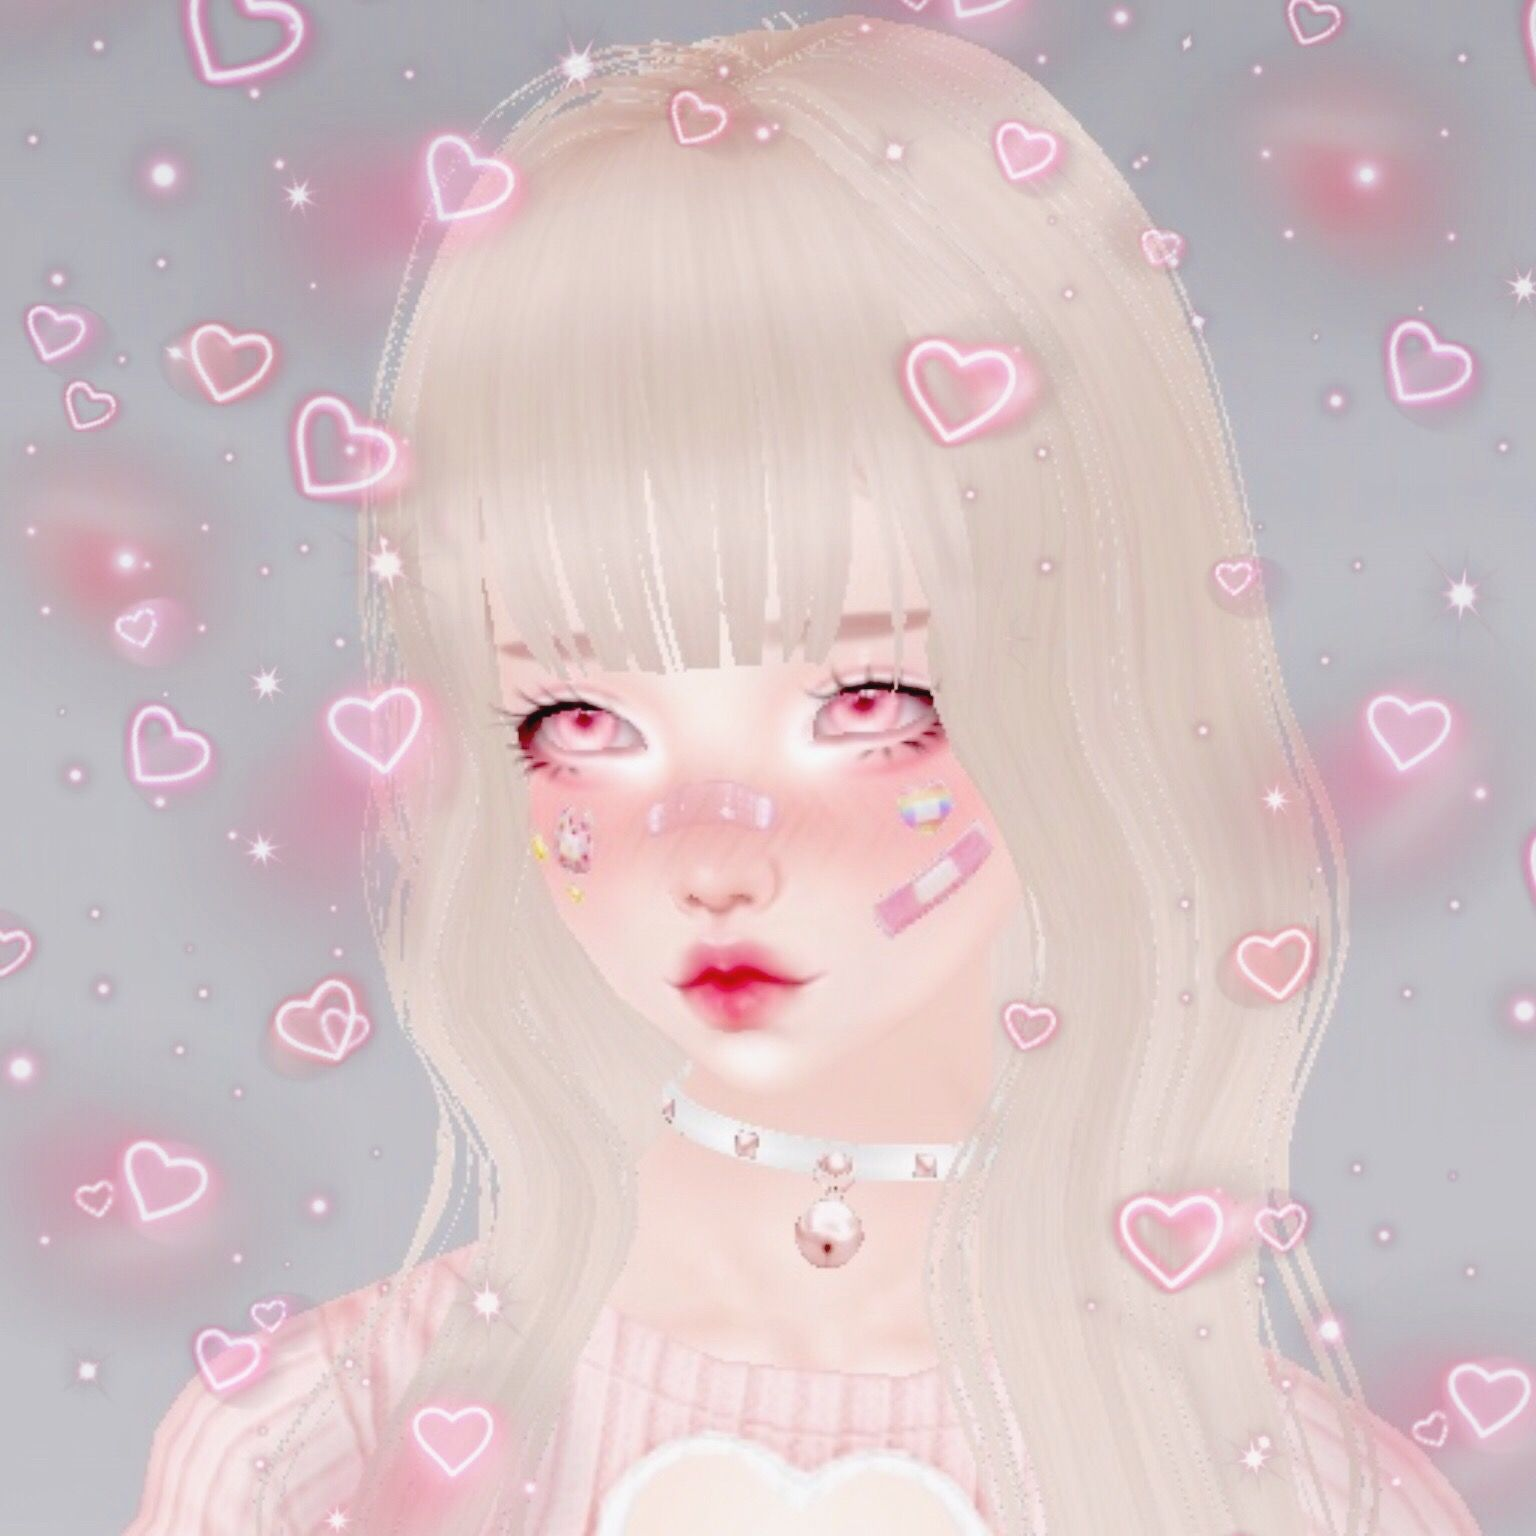 Baby Pink Aesthetic Icons